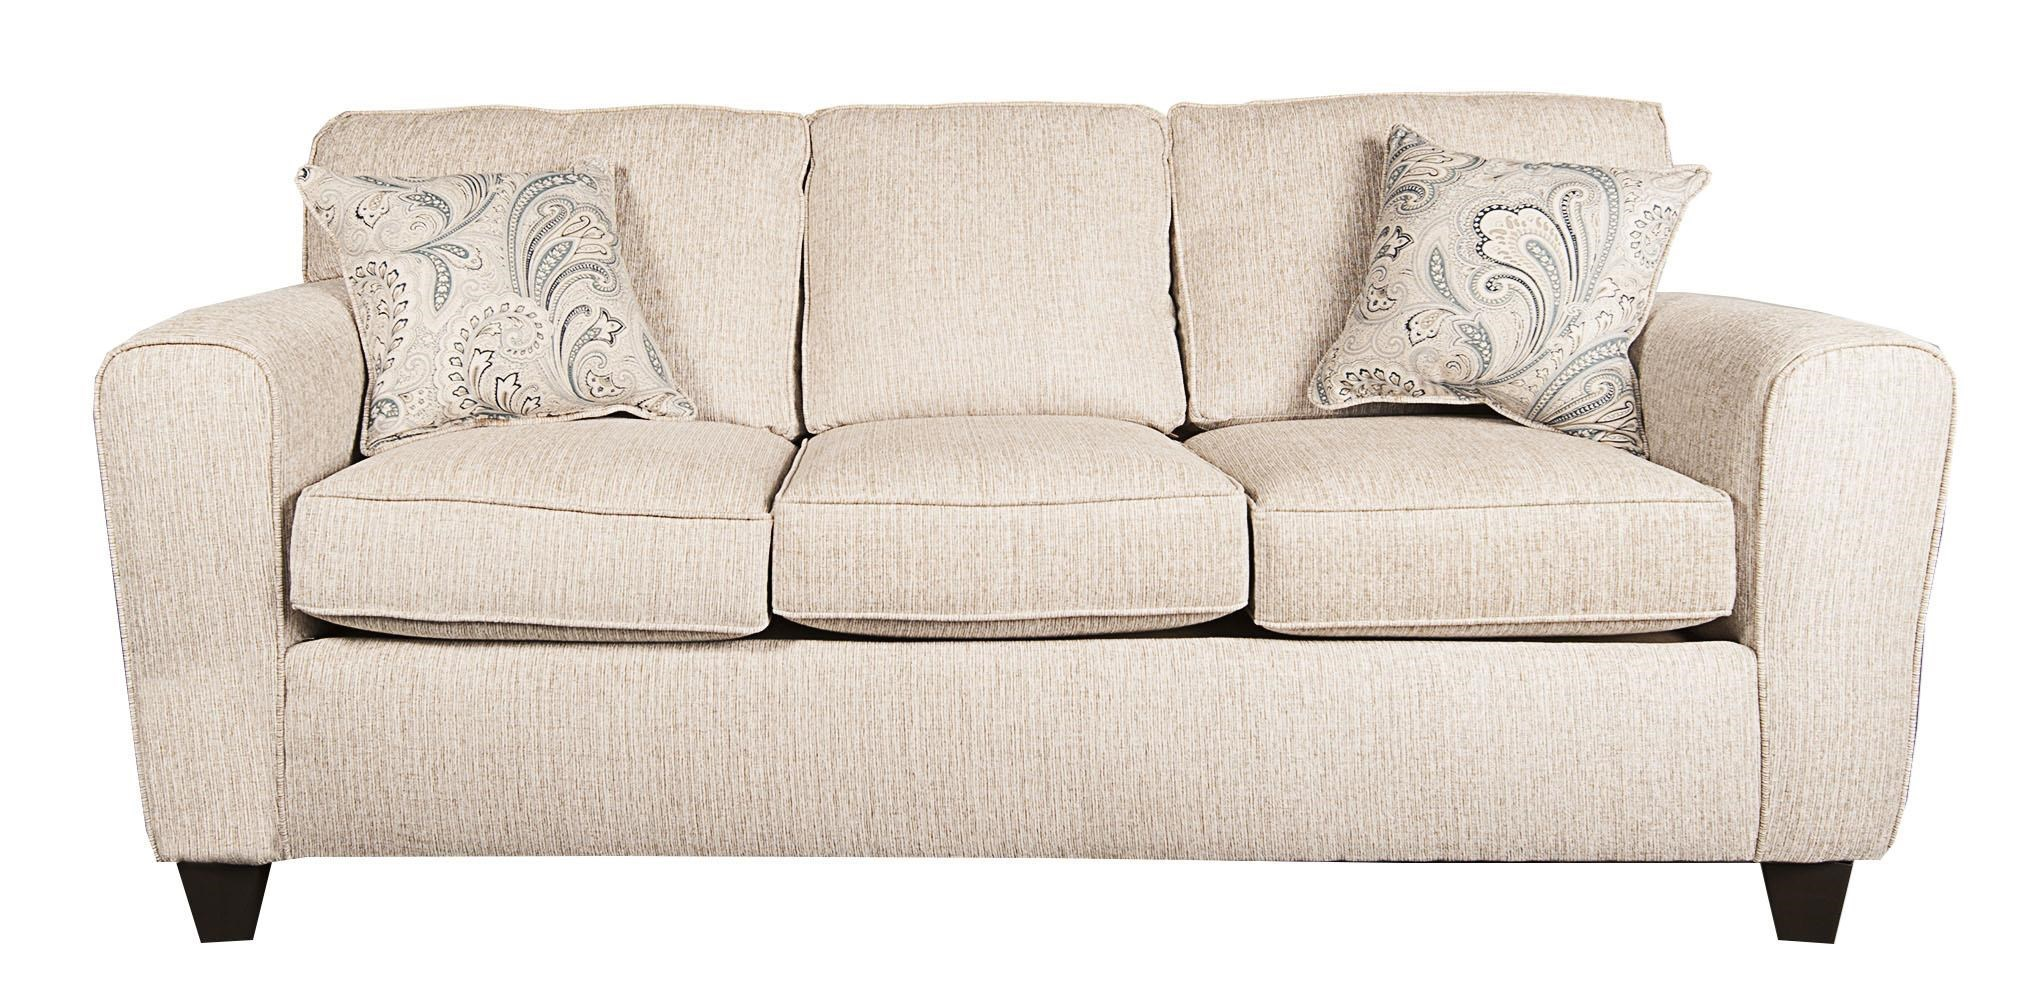 Two Sided Sofa Rexanna Traditional Sofa With Accent Pillows By Morris Home Furnishings At Morris Home